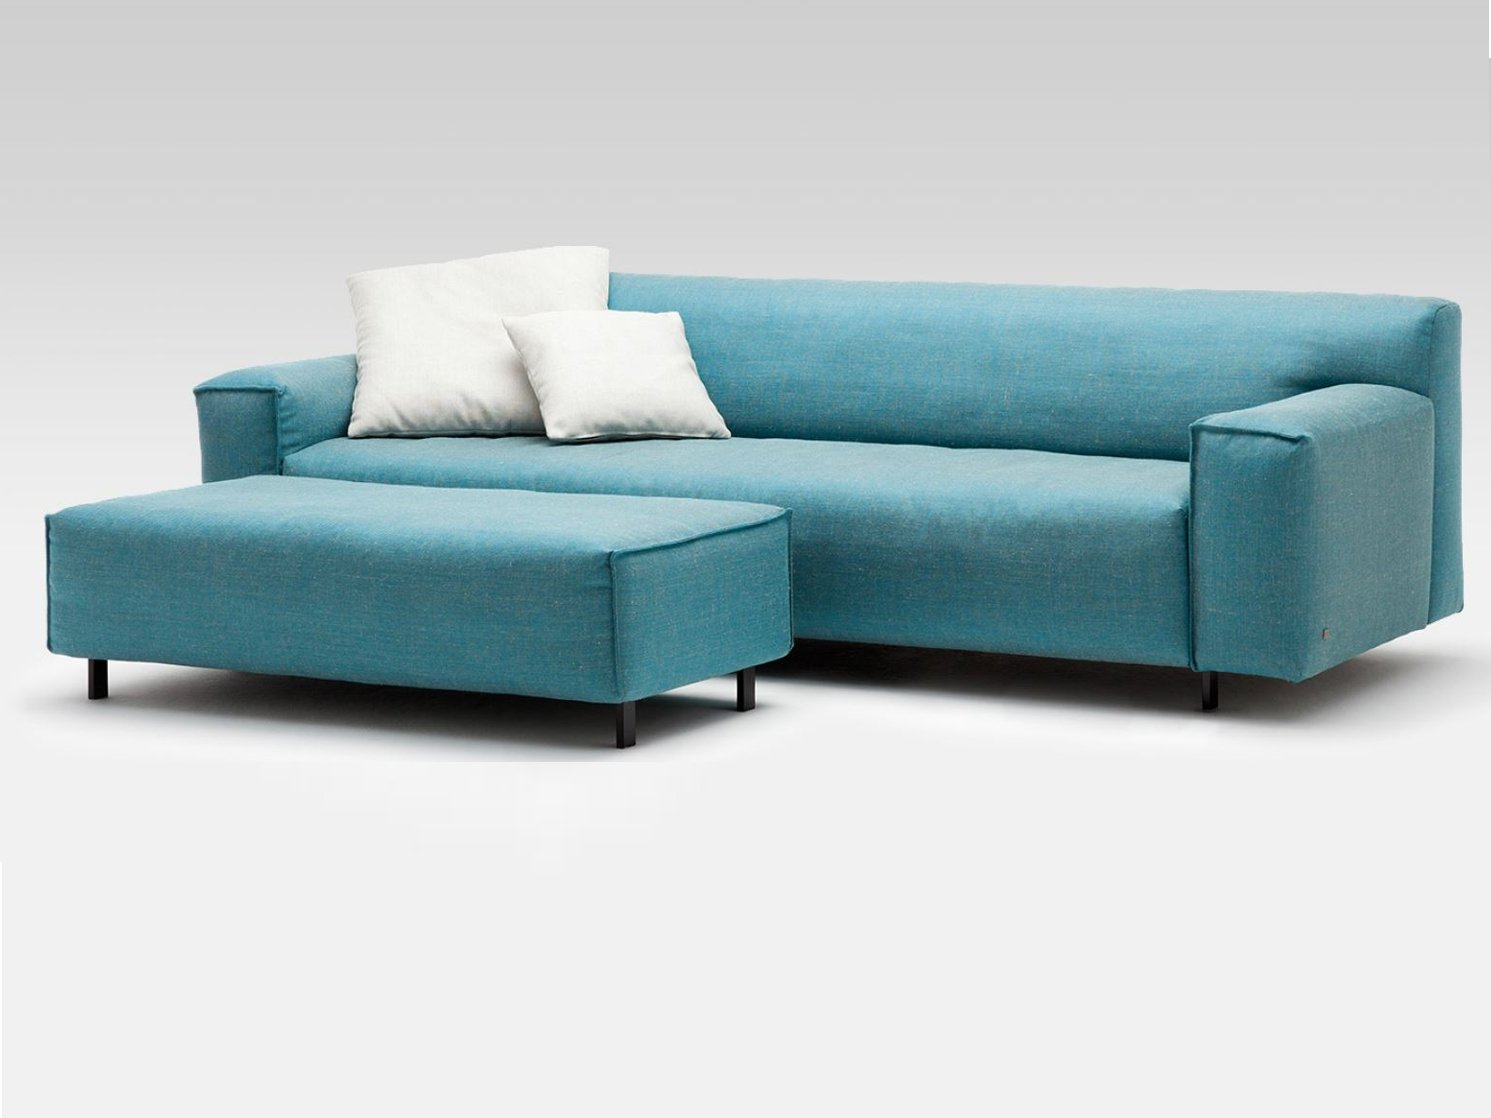 Fabric Sofa Grata By Rolf Benz Design Christian Werner